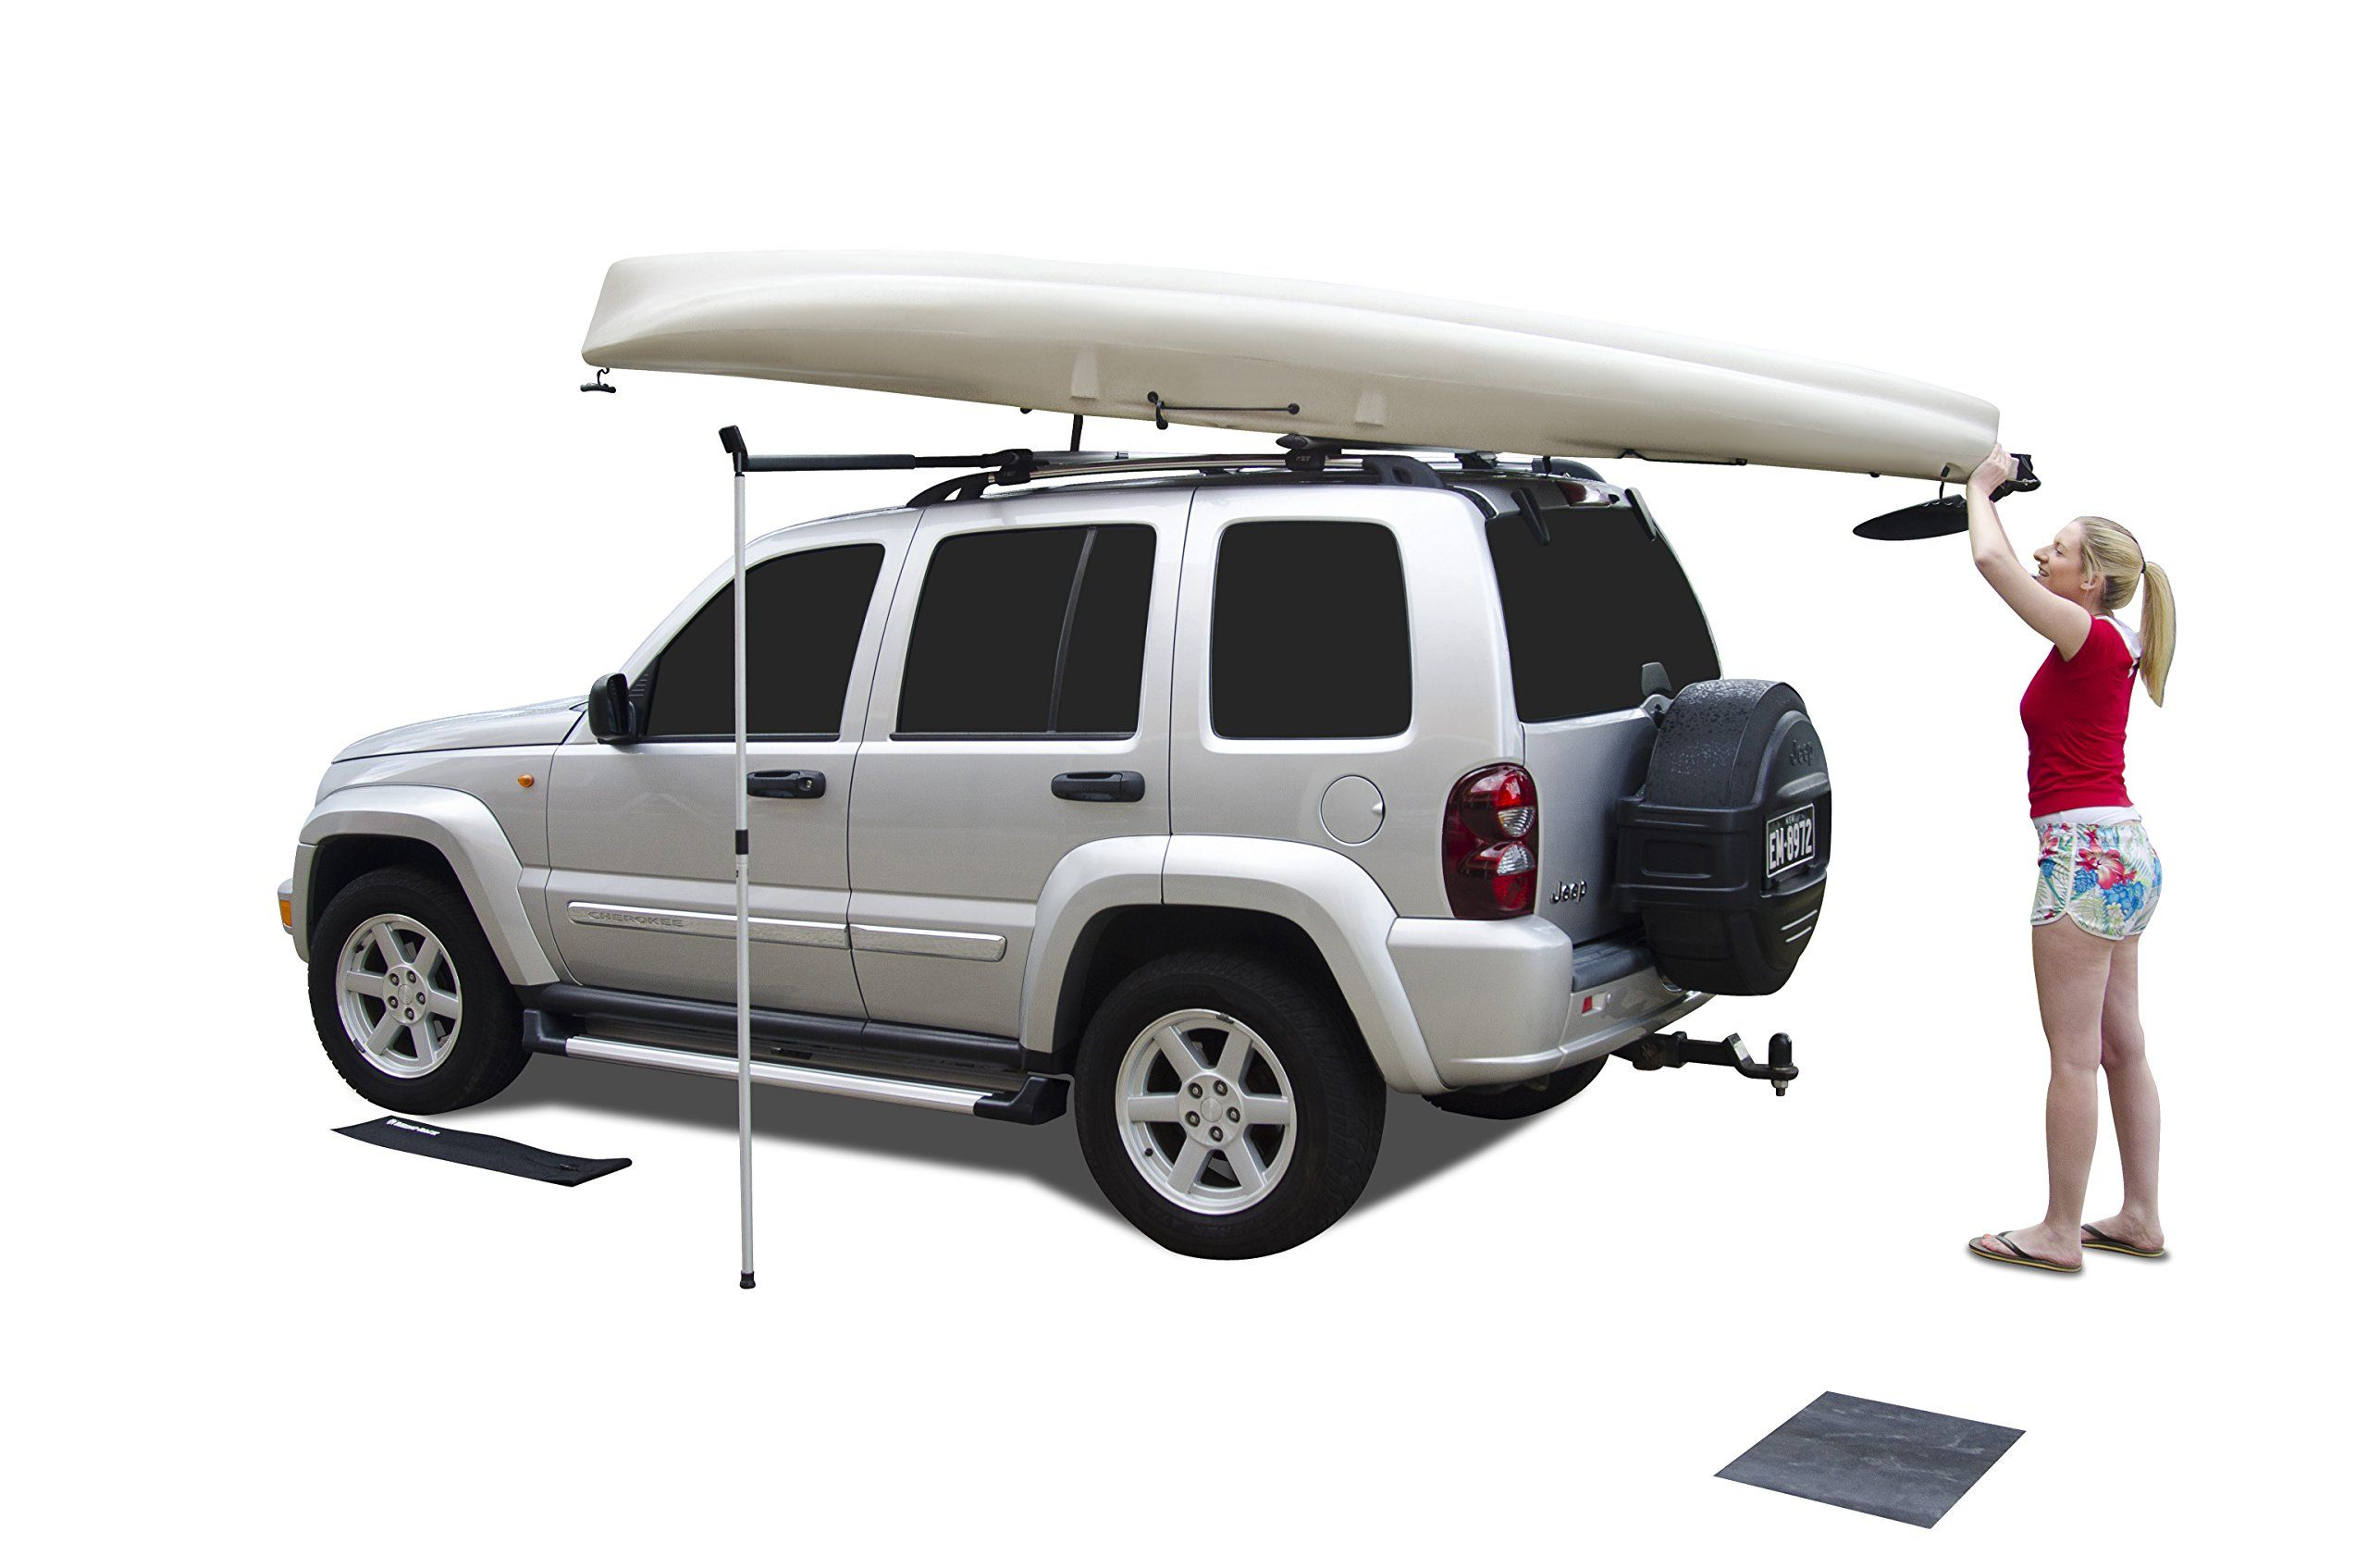 Canoeing Rhino Rack Universal Side Loader Rack For Kayaks Canoes You Could Find Out Even More Information At The Web Link Of The Photo Canoe Trip Kayaking Canoe